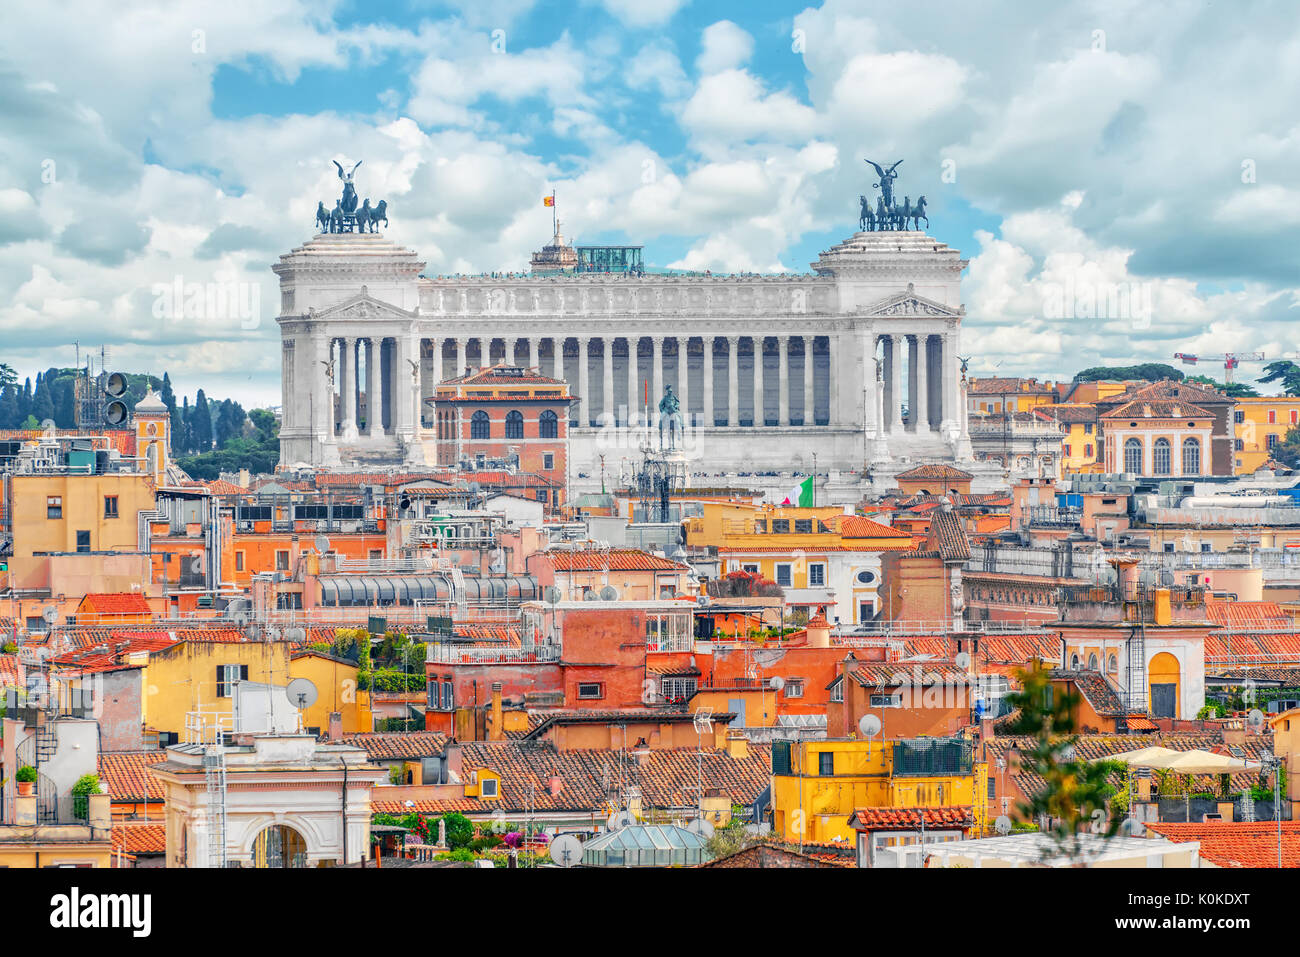 View From Terrazza Del Pincio Stock Photos & View From Terrazza Del ...